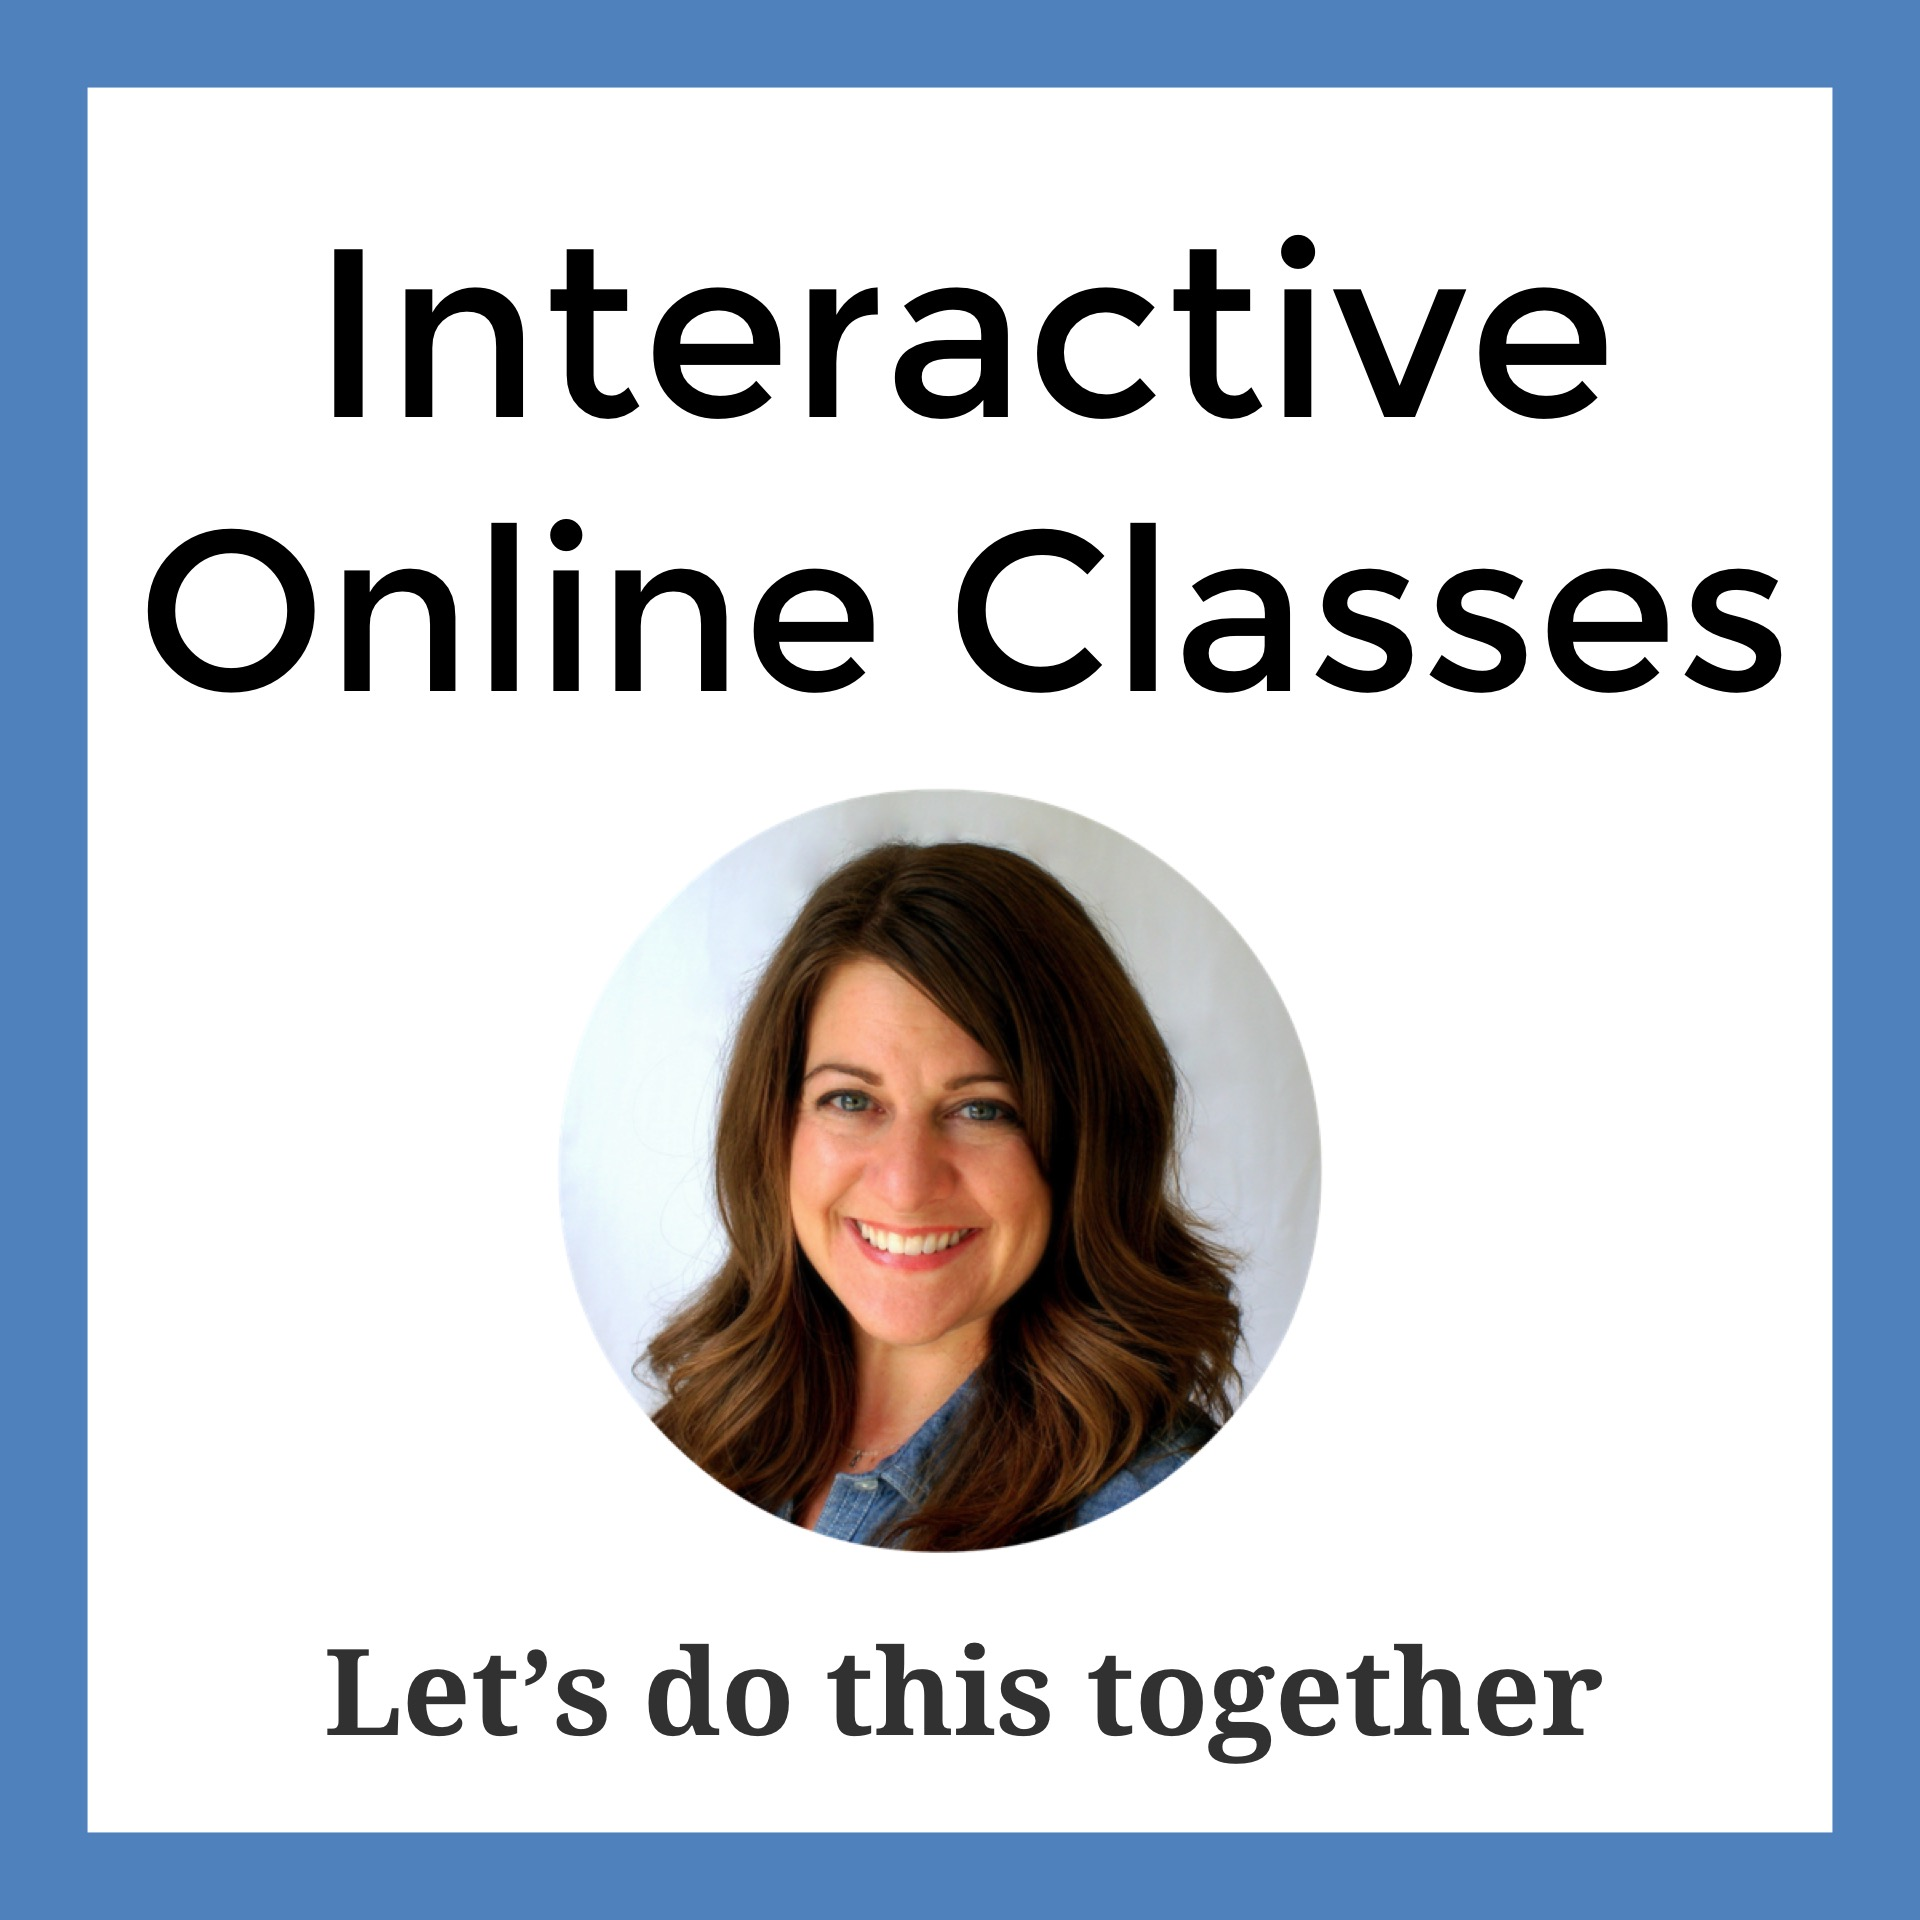 Interactive Online Classes Let's do this together